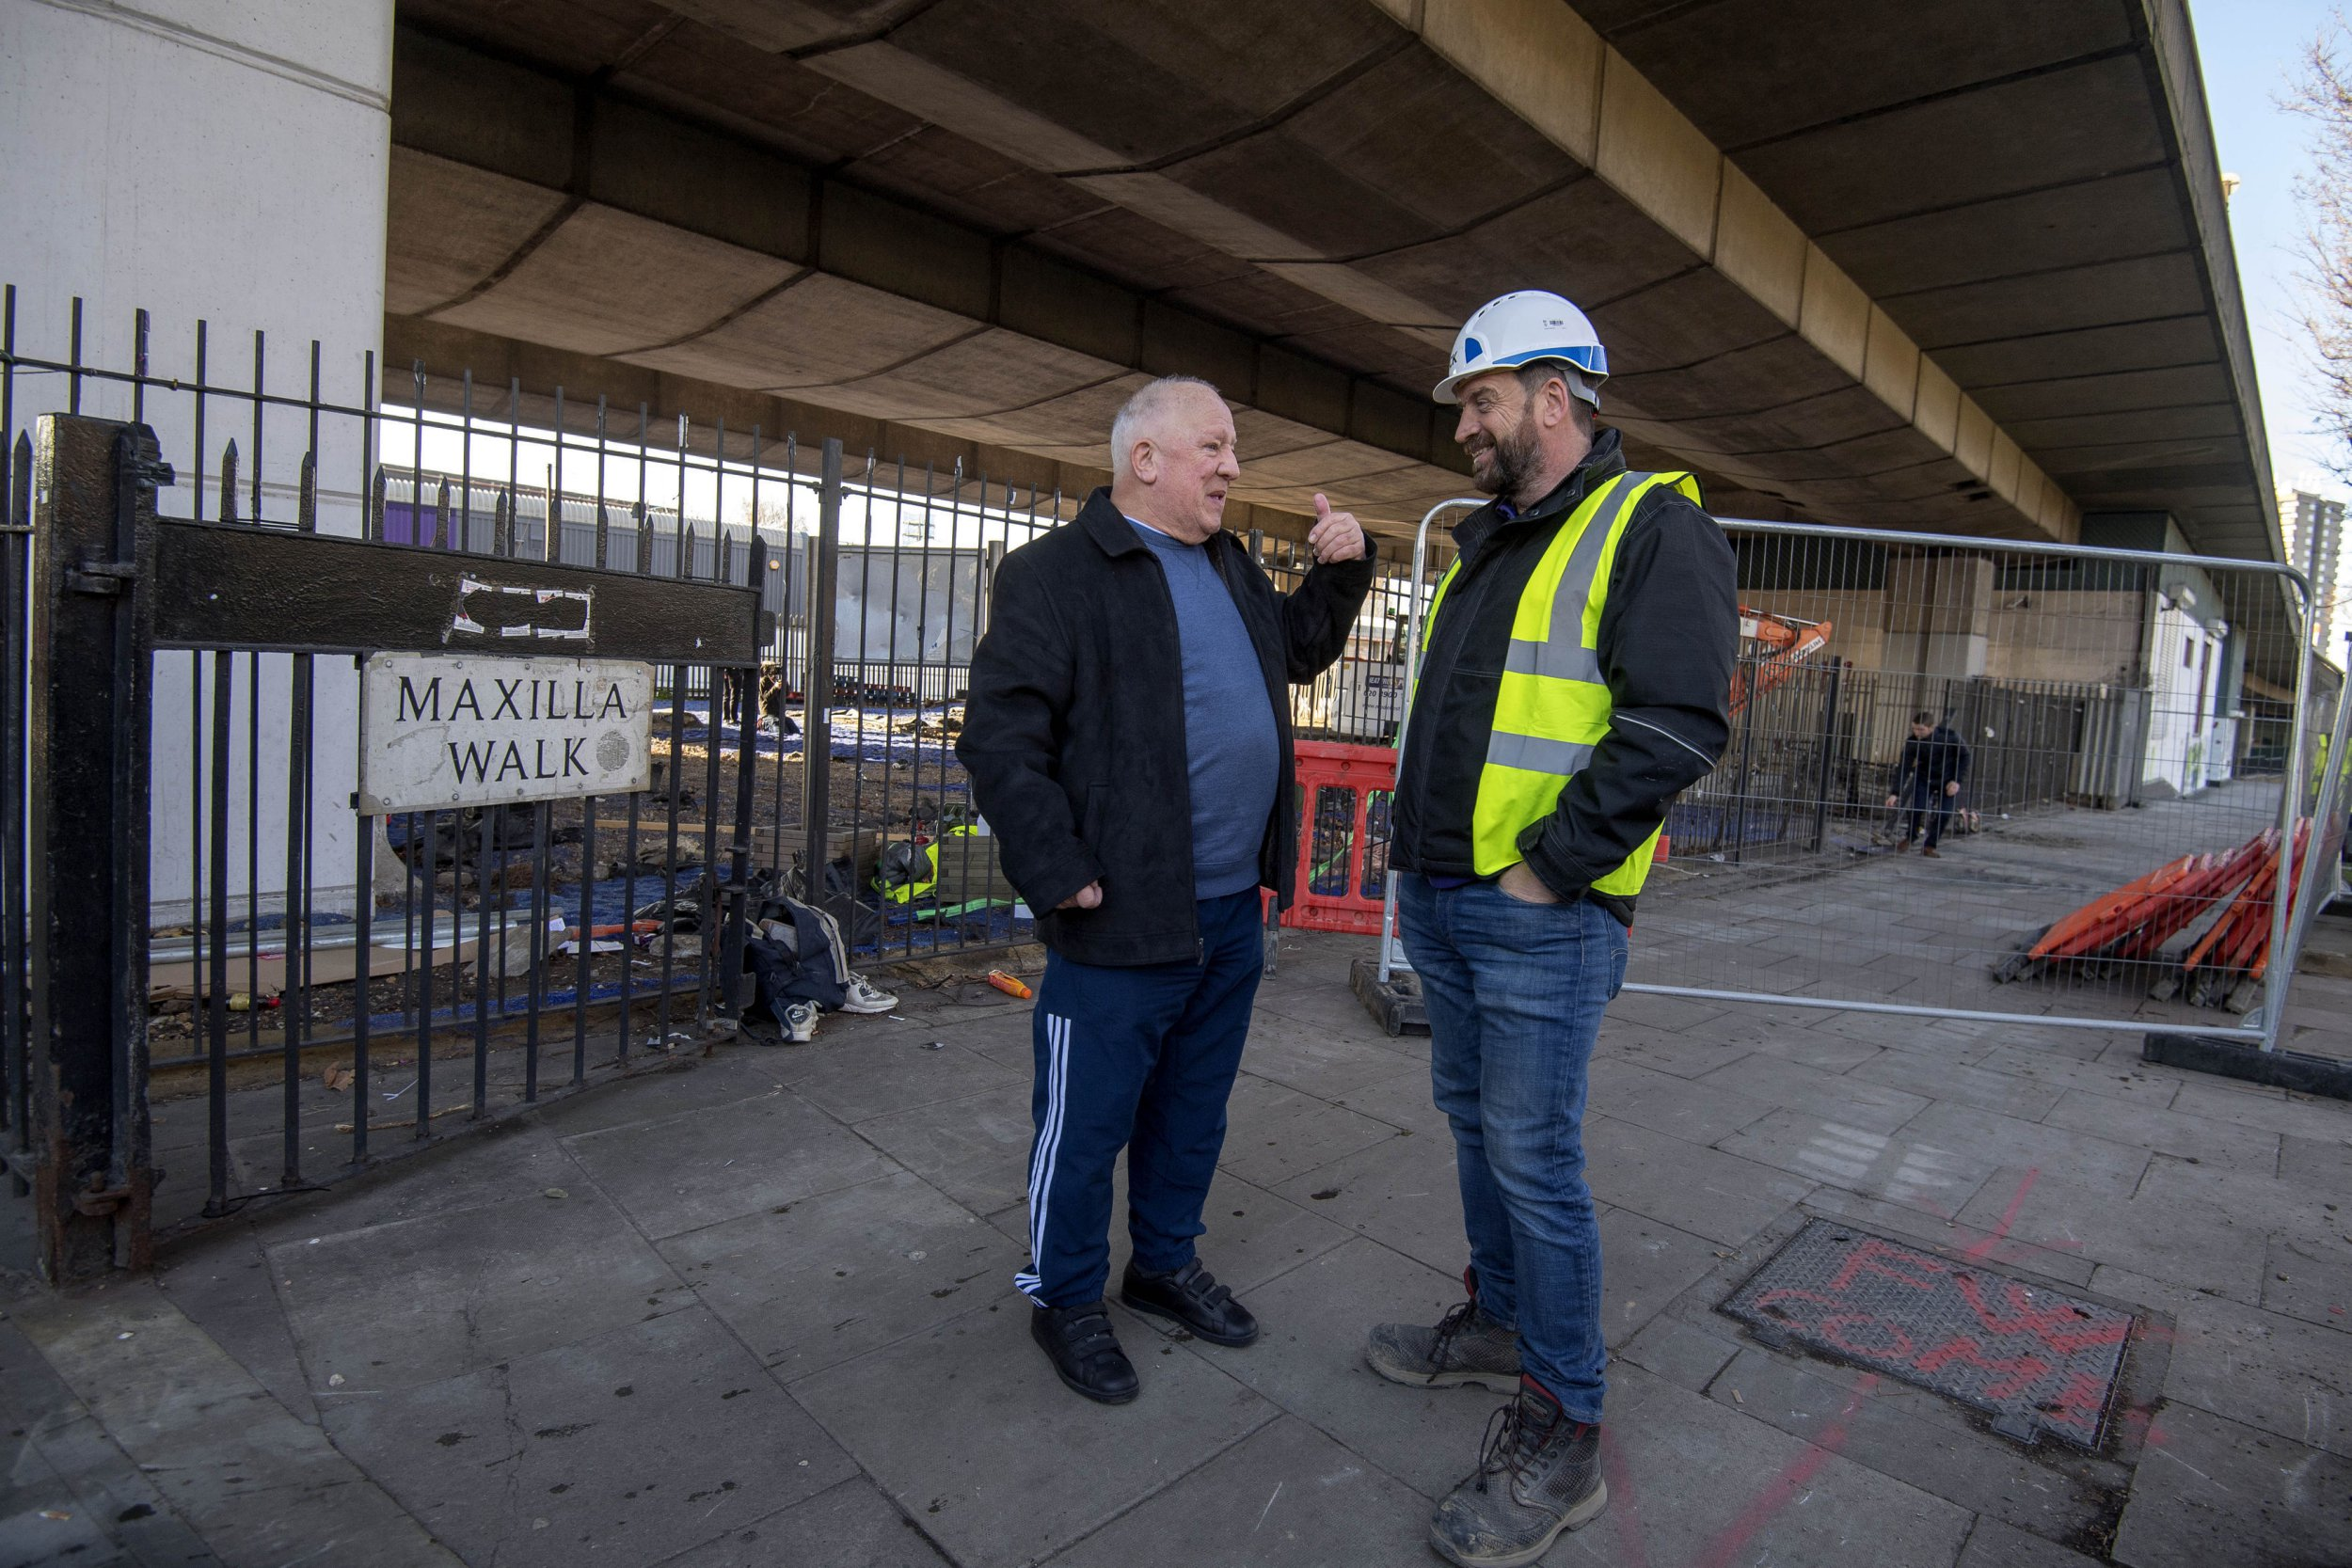 EMBARGOED TO 1200 MONDAY MARCH 26 BBC's DIY SOS Nick Knowles (right) talks with Mick Delaney, senior coach of the Dale Youth Amateur Boxing Club which used to be housed on the first floor of Grenfell Tower, on the site of a brand new multi-use community space and gym that his team are building for the Grenfell community on a site underneath the A40. PRESS ASSOCIATION Photo. Picture date: Monday March 26, 2018. Photo credit should read: Victoria Jones/PA Wire